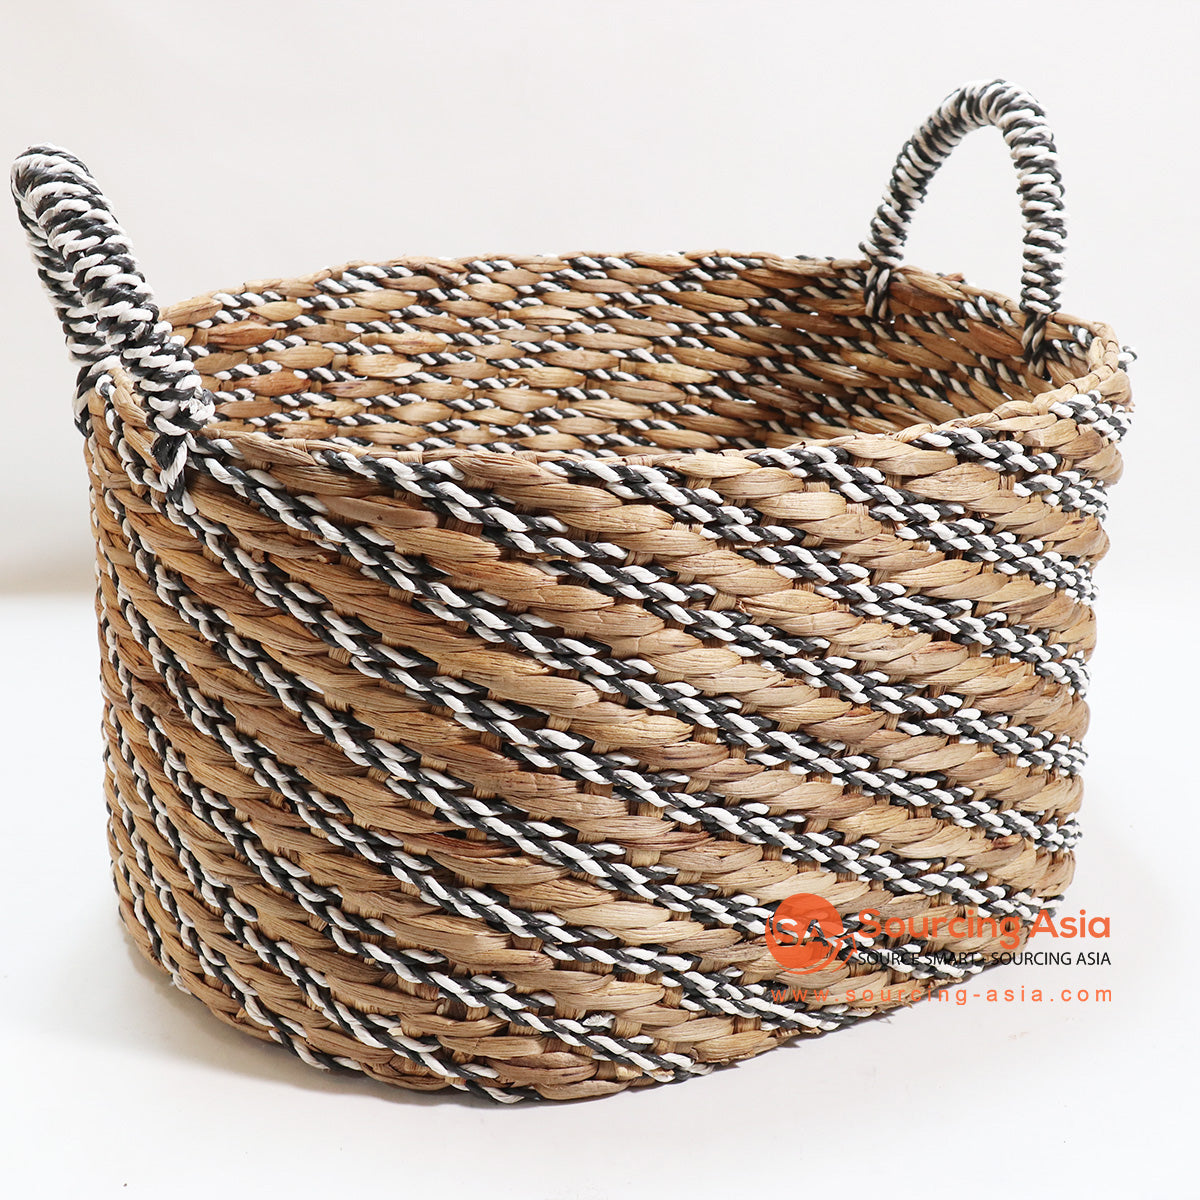 HBSC127-2 WATER HYACINTH AND BLACK AND WHITE RAFFIA BASKET